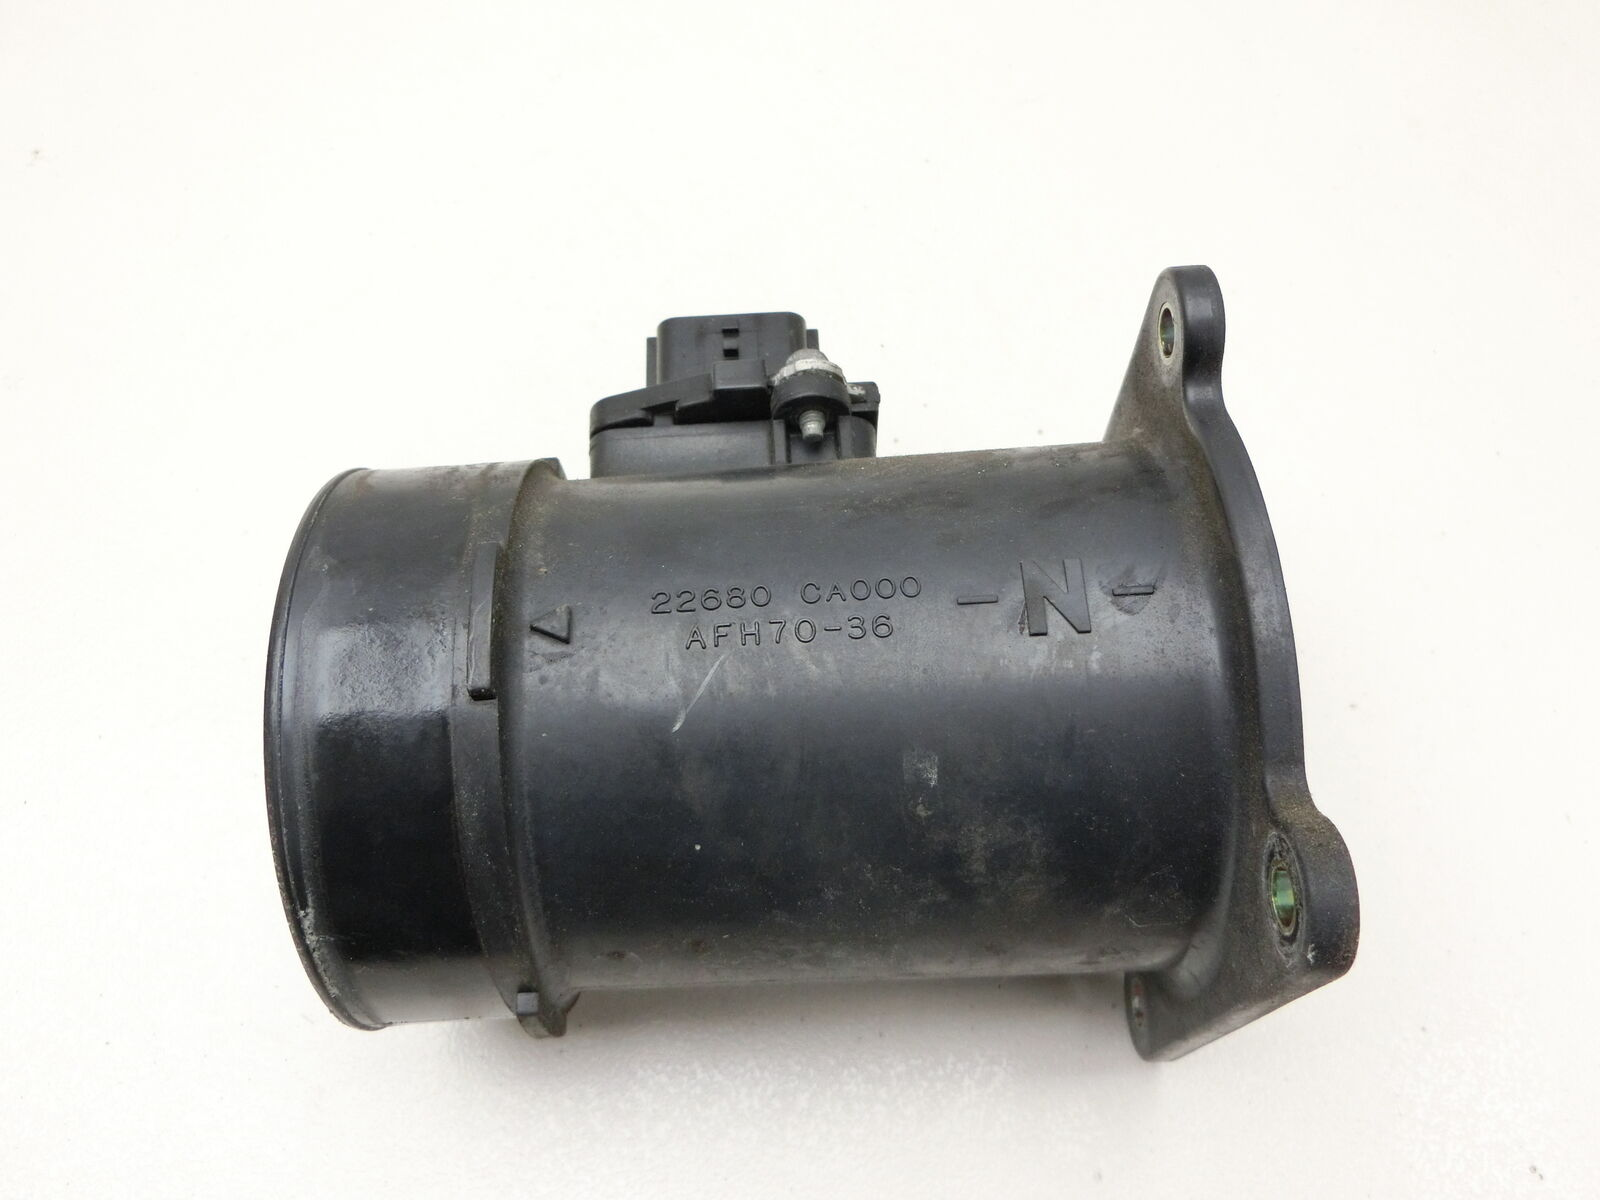 Mass Air Flow Meter for Nissan Murano I Z50 3,5 172KW 22680-CA000 111TKM